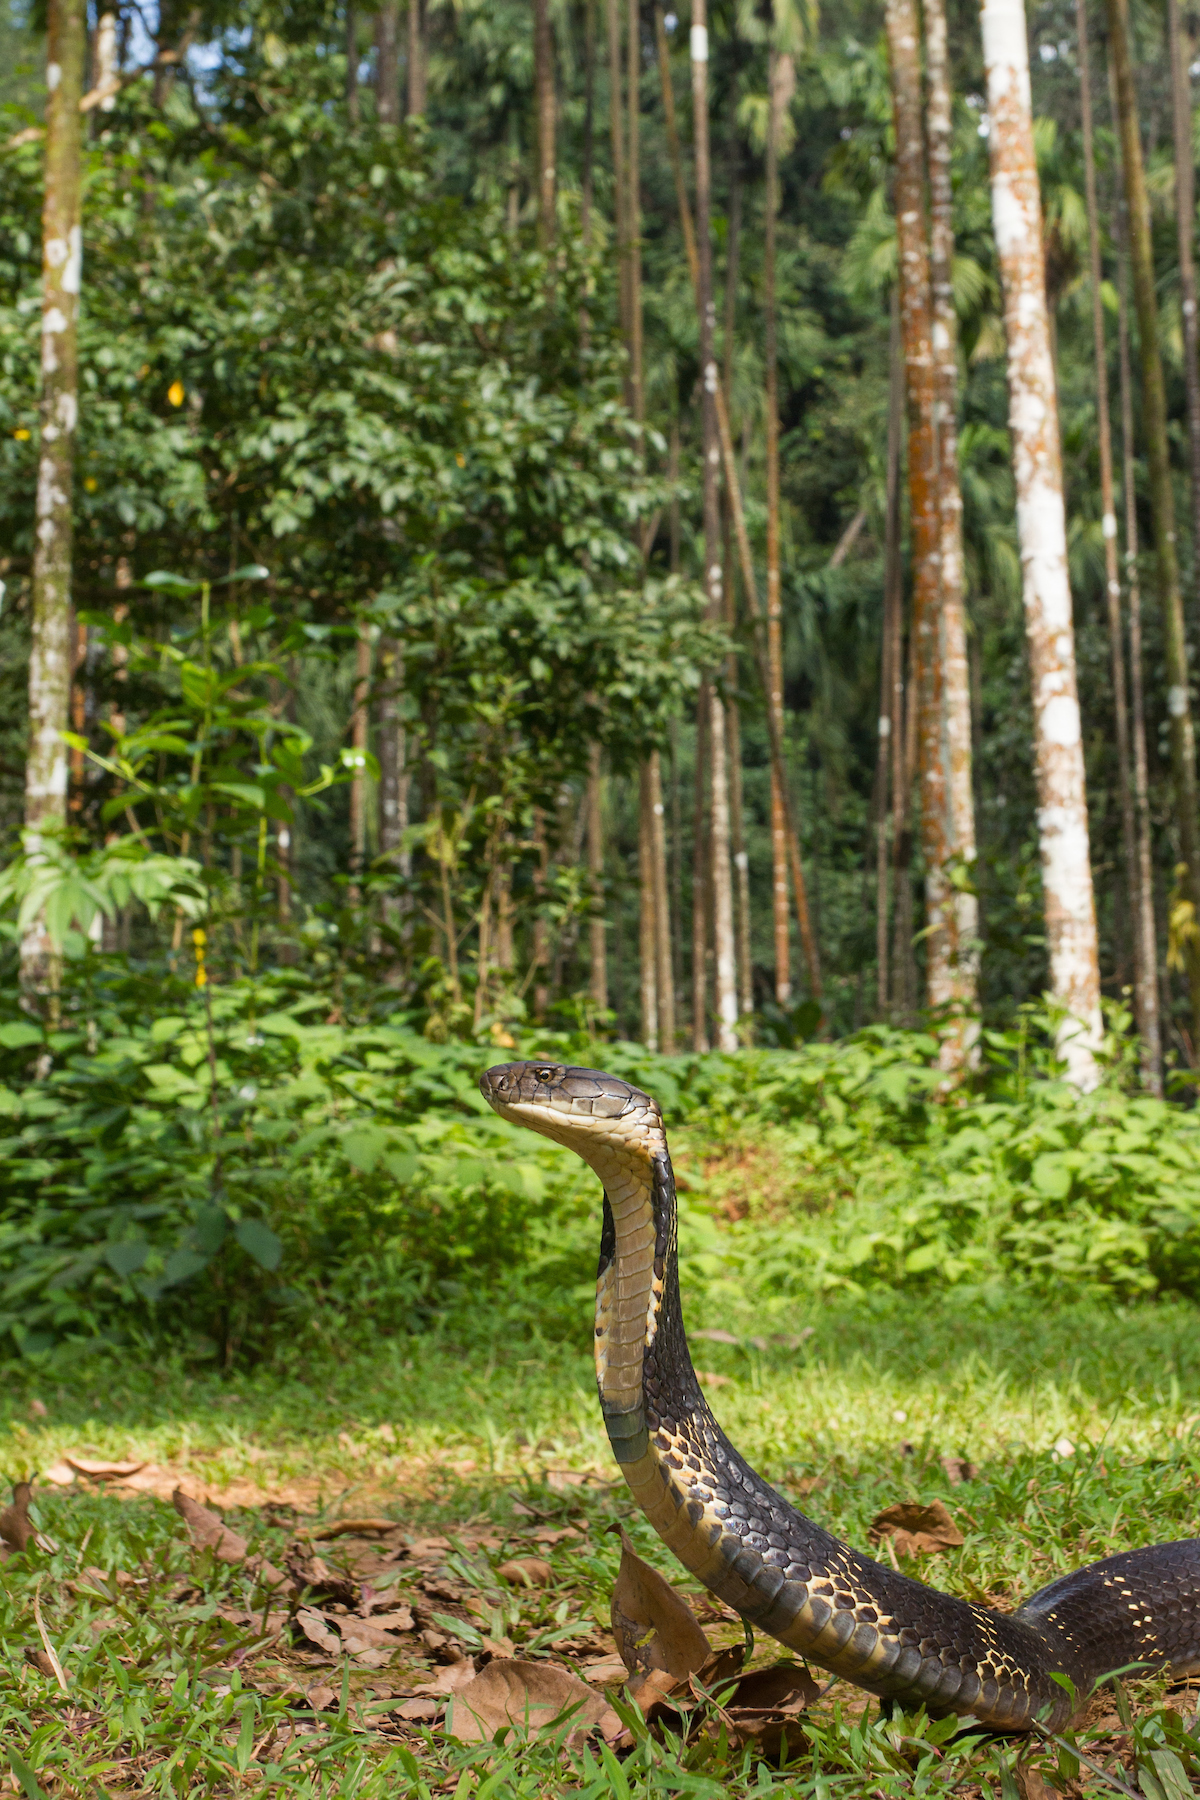 Agumbe is famous for its king cobras. When angry they can raise themselves up to six feet. Their forked tongue is capable of delivering a large volume of a potent neurotoxin that can kill a large animal within minutes. Photo: Shreeram MV